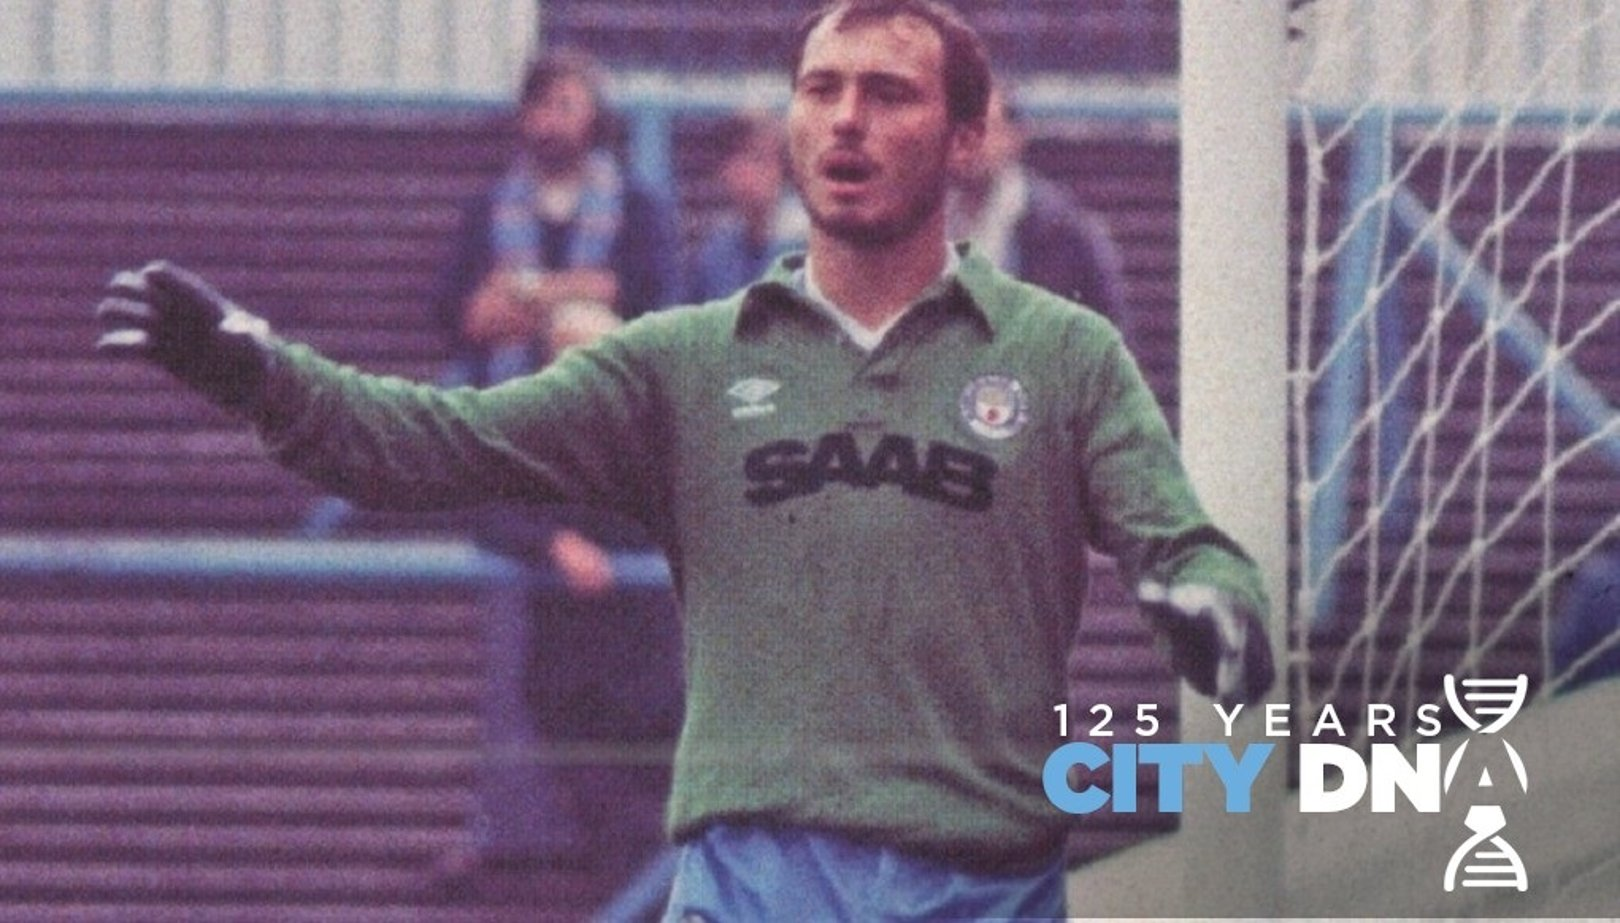 City DNA #116: Our very own Supermac